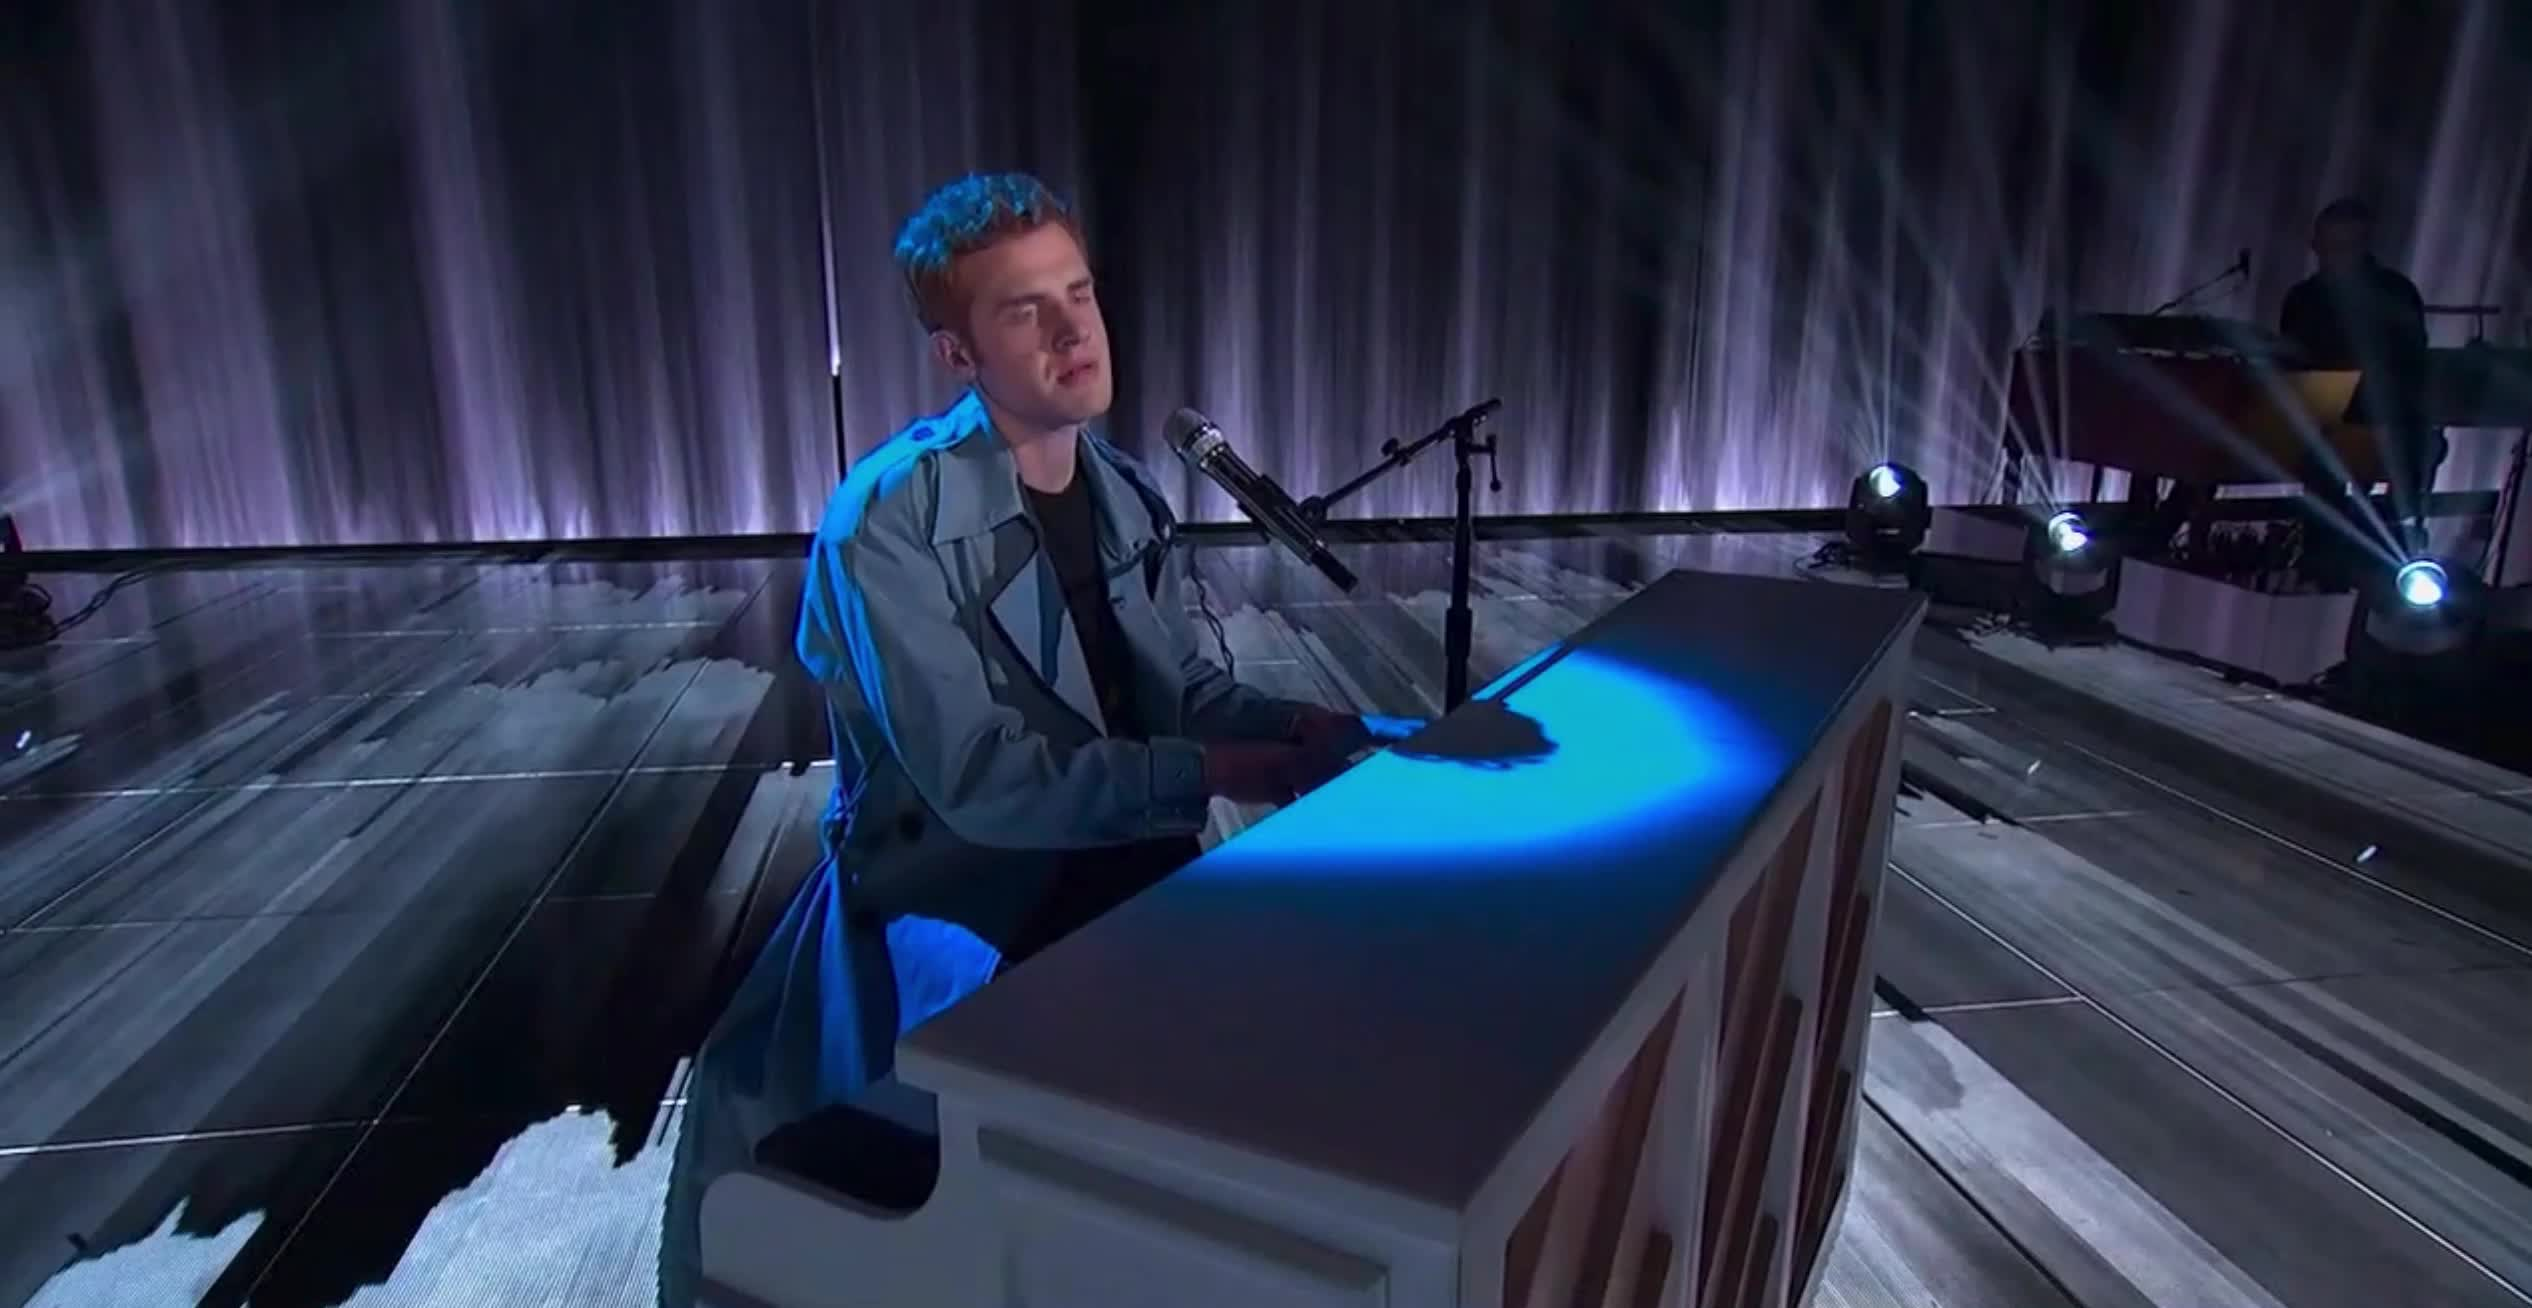 american idol, american idol season 17, americanidol, jeremiah lloyd harmon, katy perry, lionel richie, luke bryan, ryan seacrest, season 17, singing, American Idol Jeremiah on the Piano GIFs